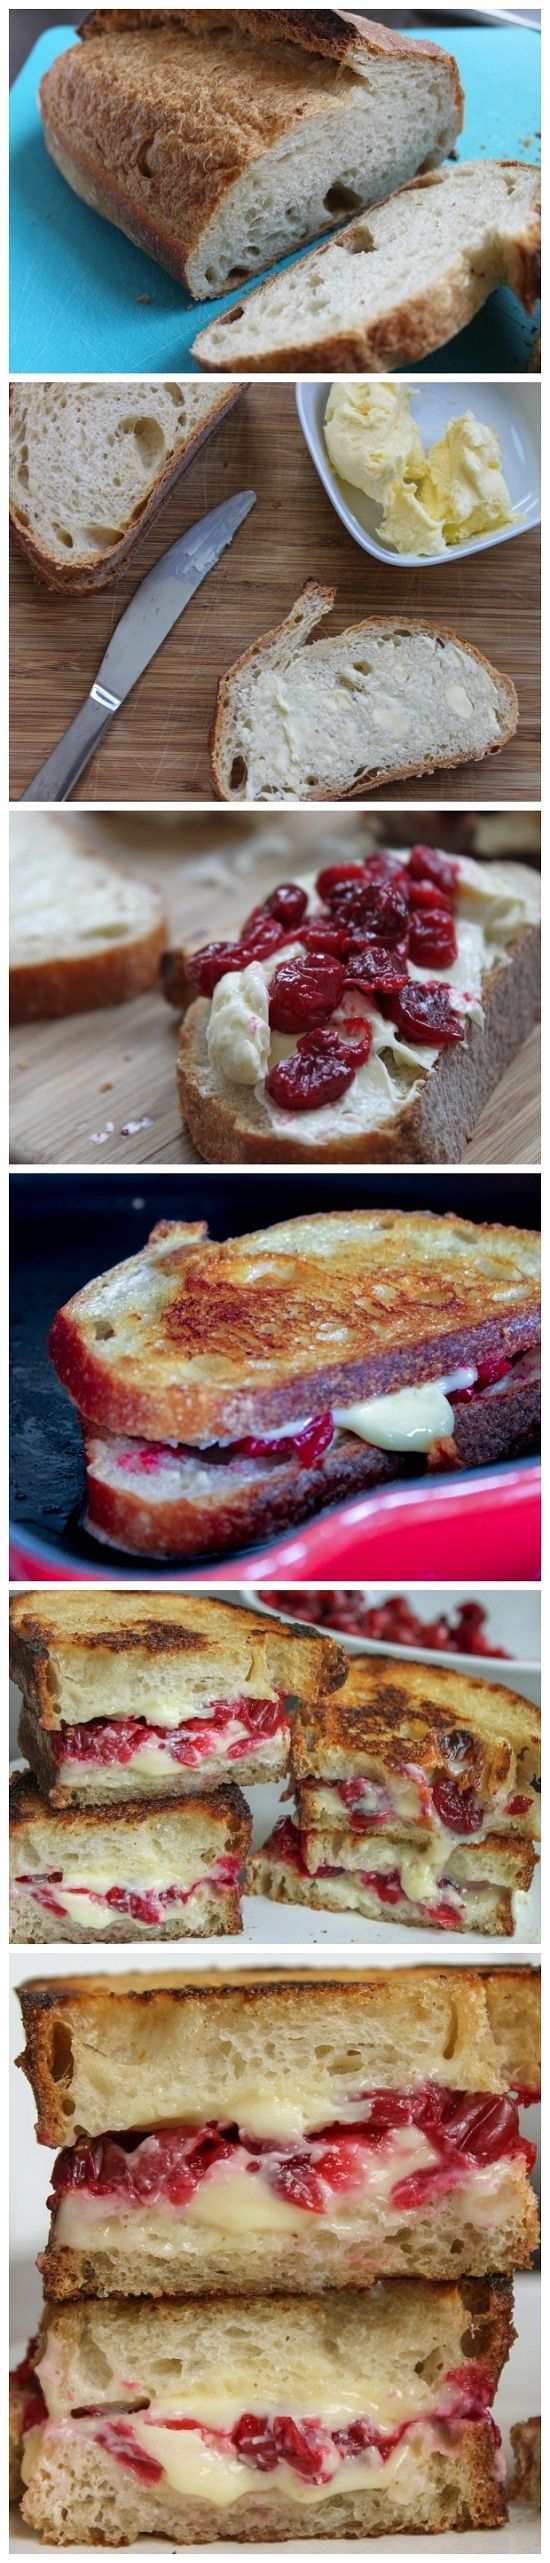 Roasted Cranberry & Brie Grilled Cheese2 slices of Italian batard ...